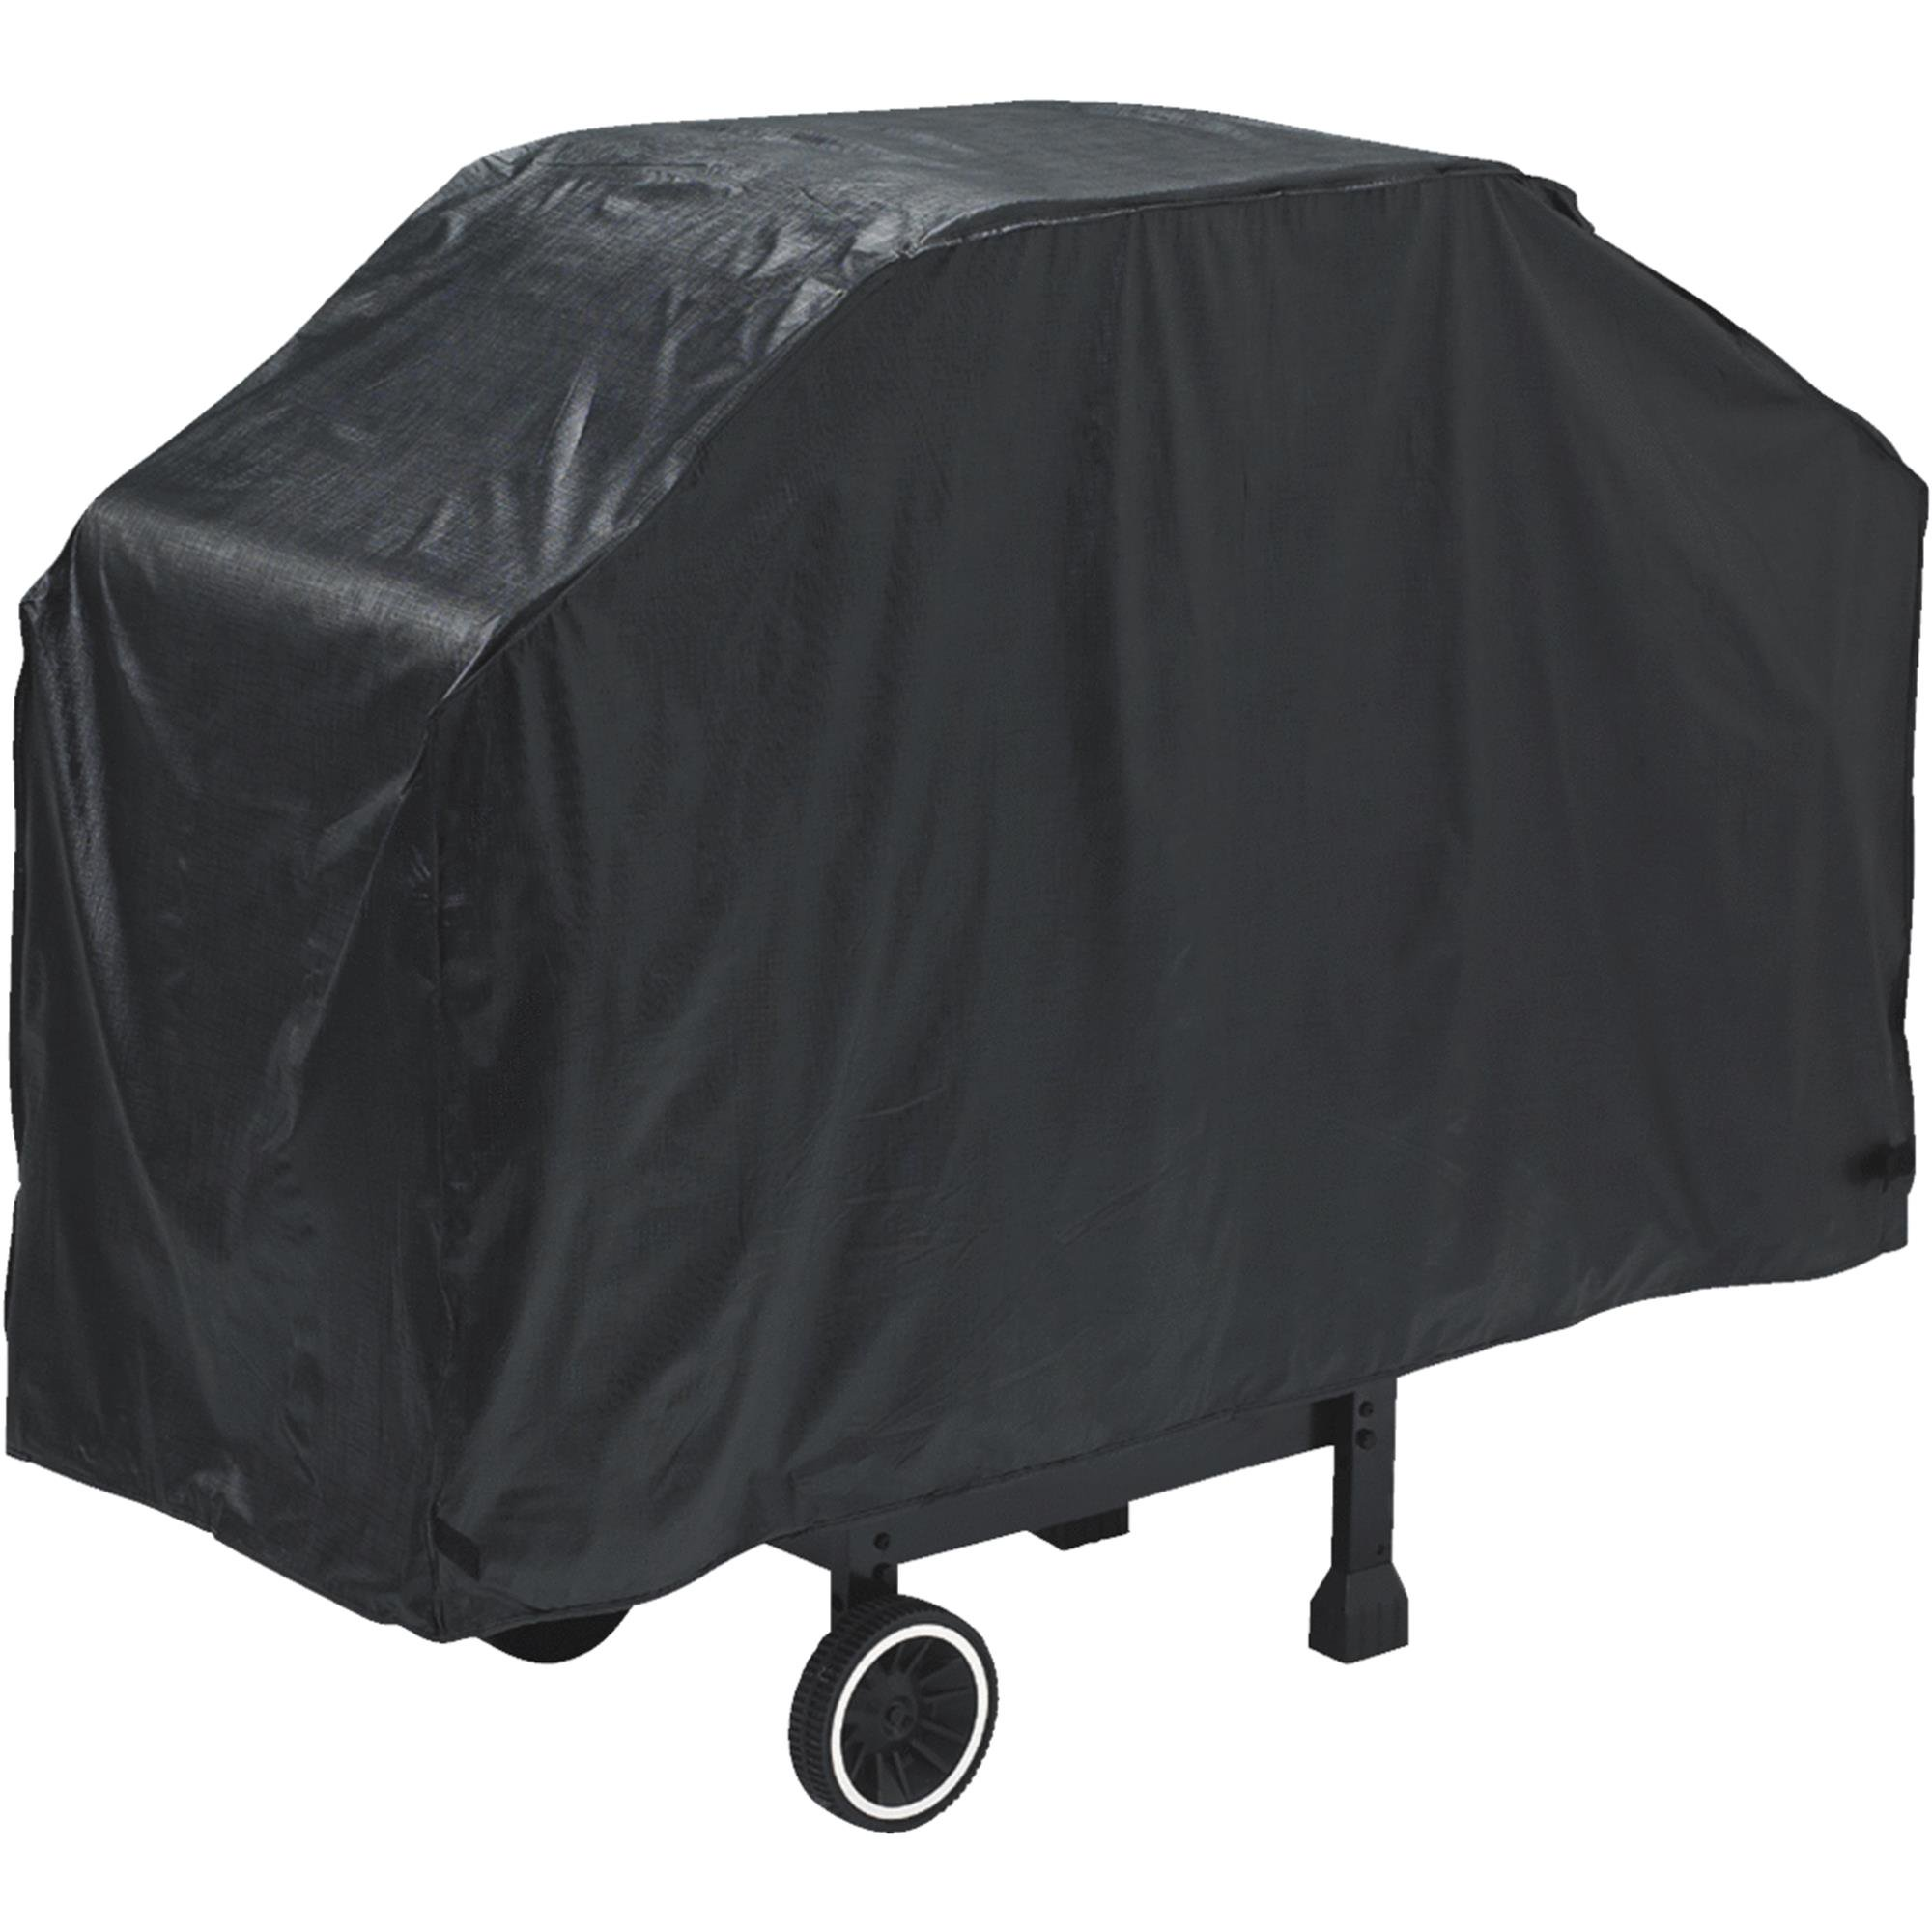 """Onward Grill Pro 84160 60"""" X 21"""" X 38"""" Full Cart Grill Covers Assorted... by Grillpro"""